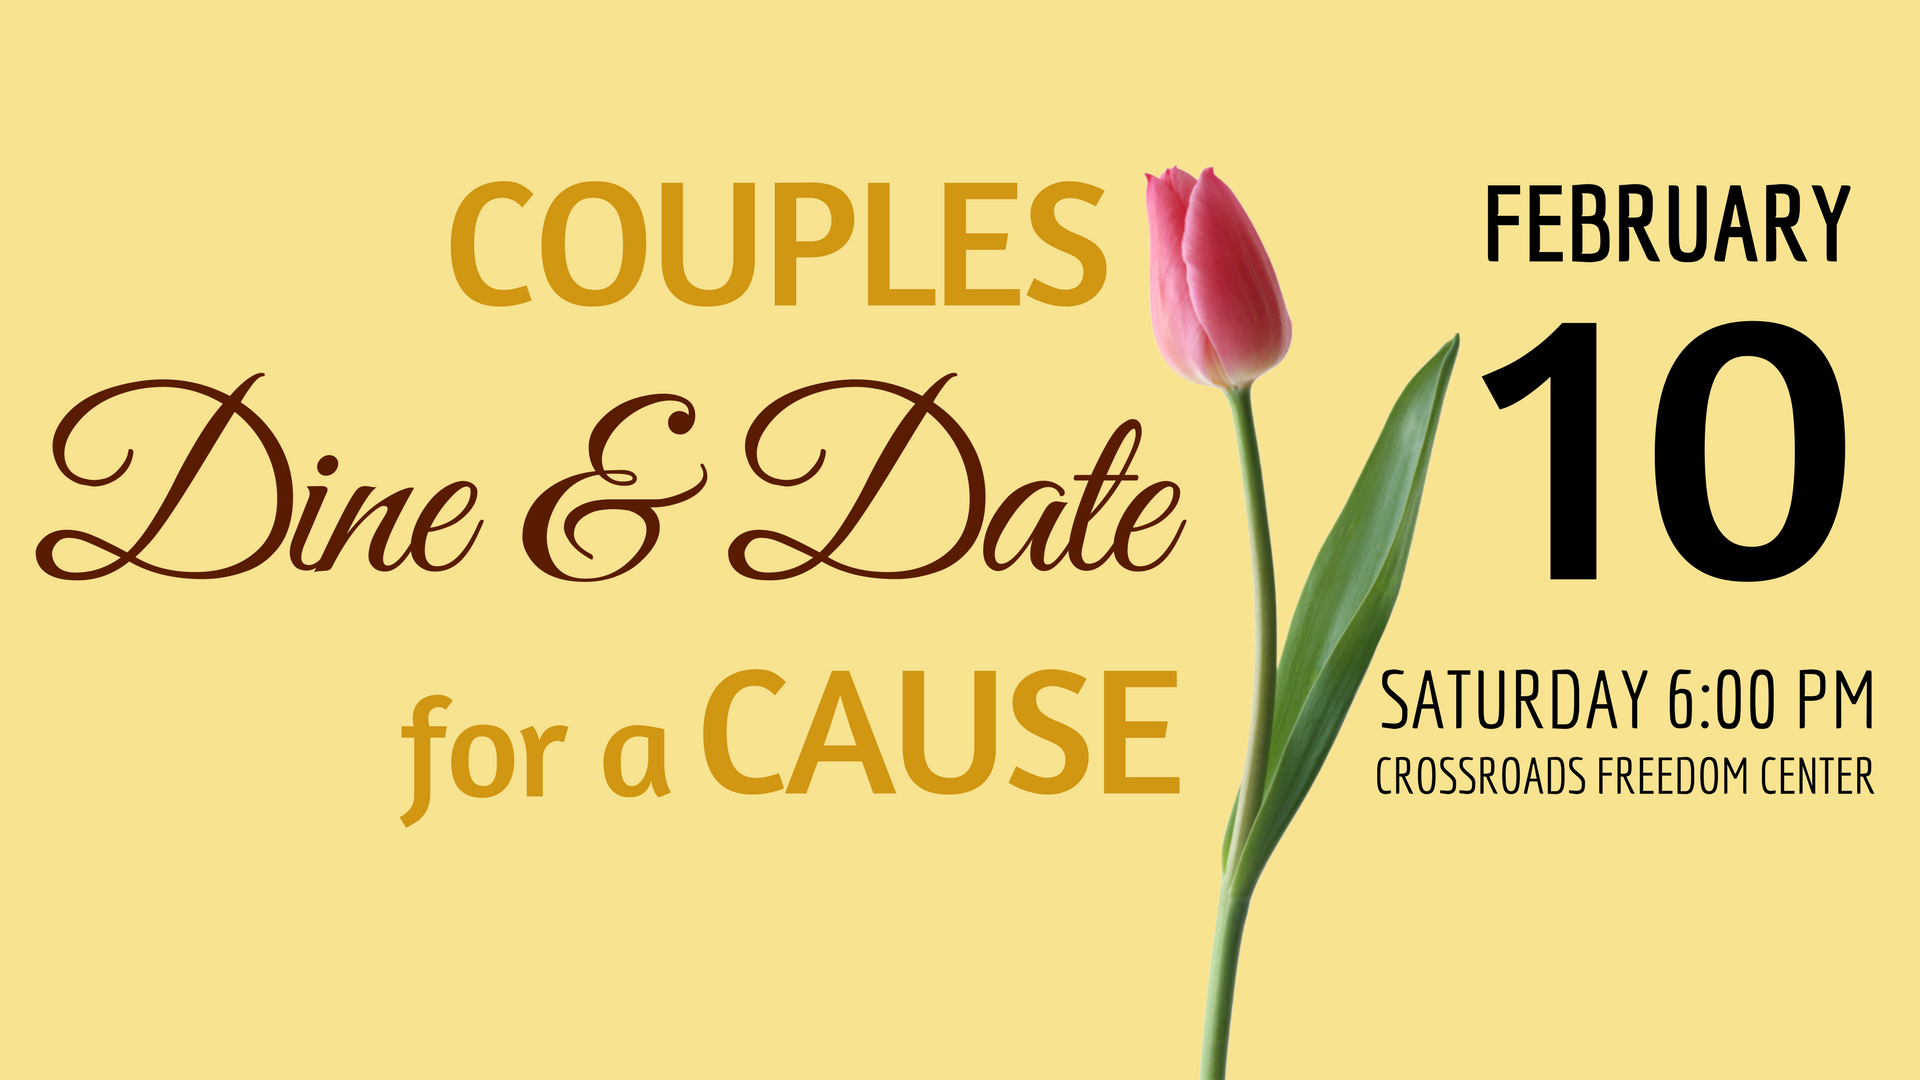 Couples Dine and Date for a Cause